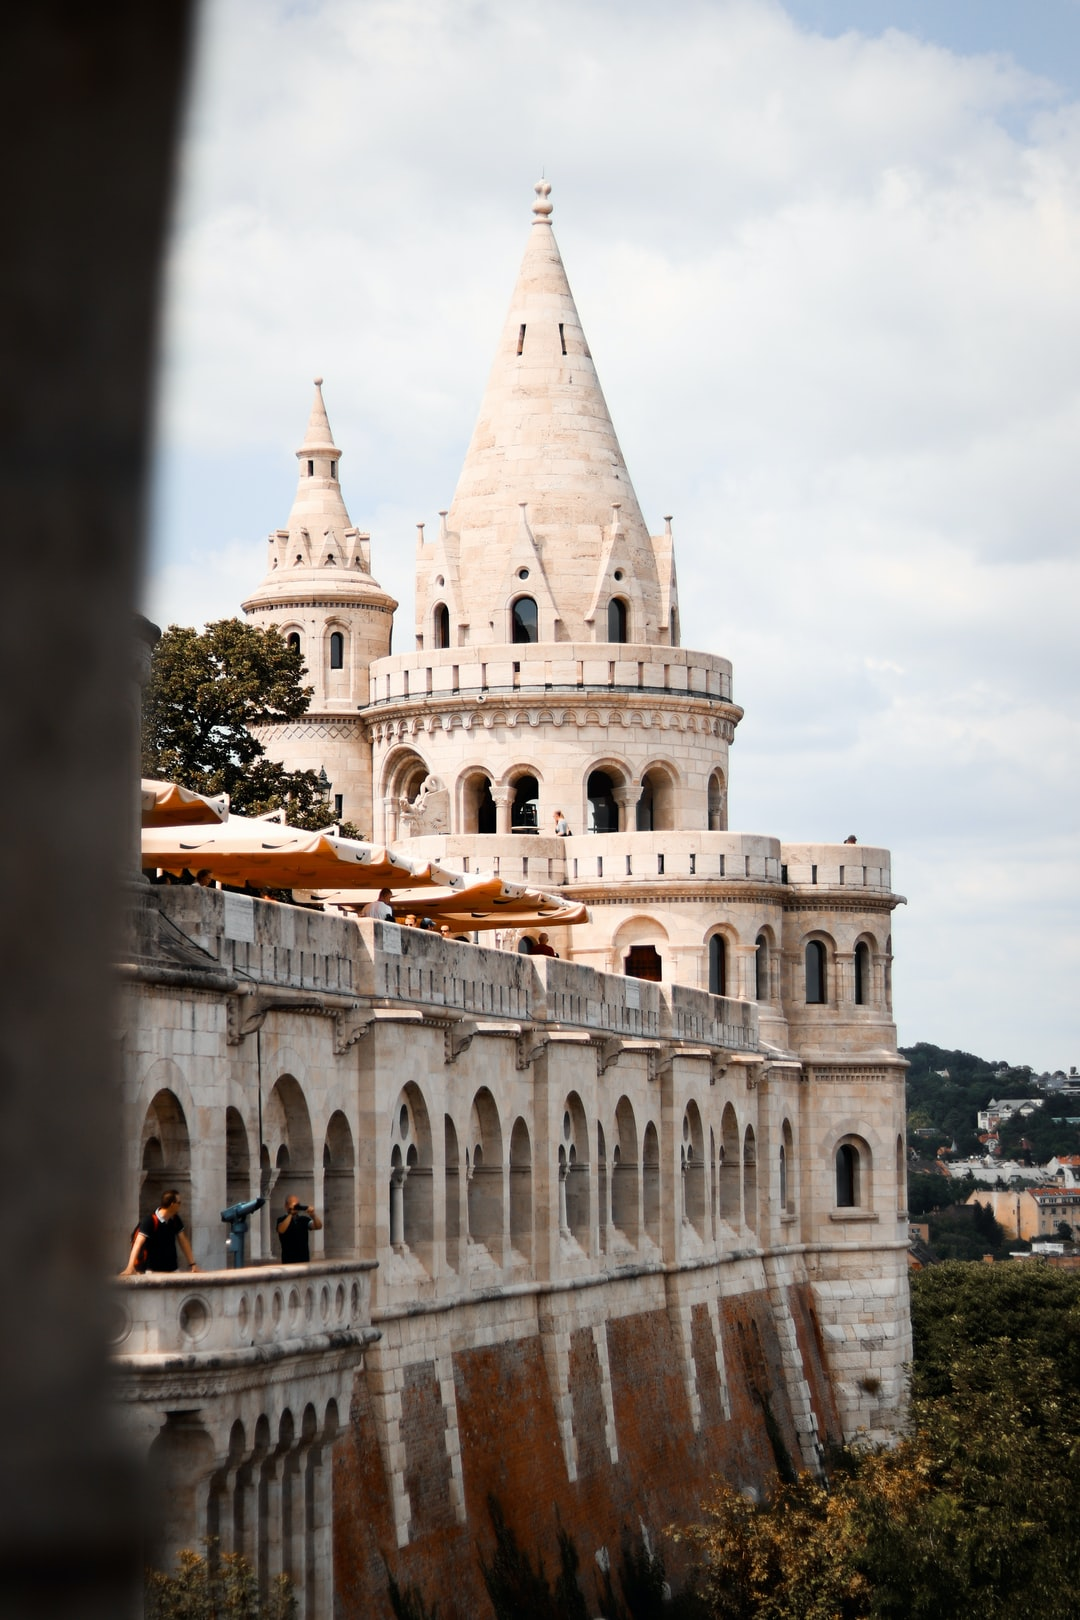 One of the fantastical towers of the Fisherman's Bastion